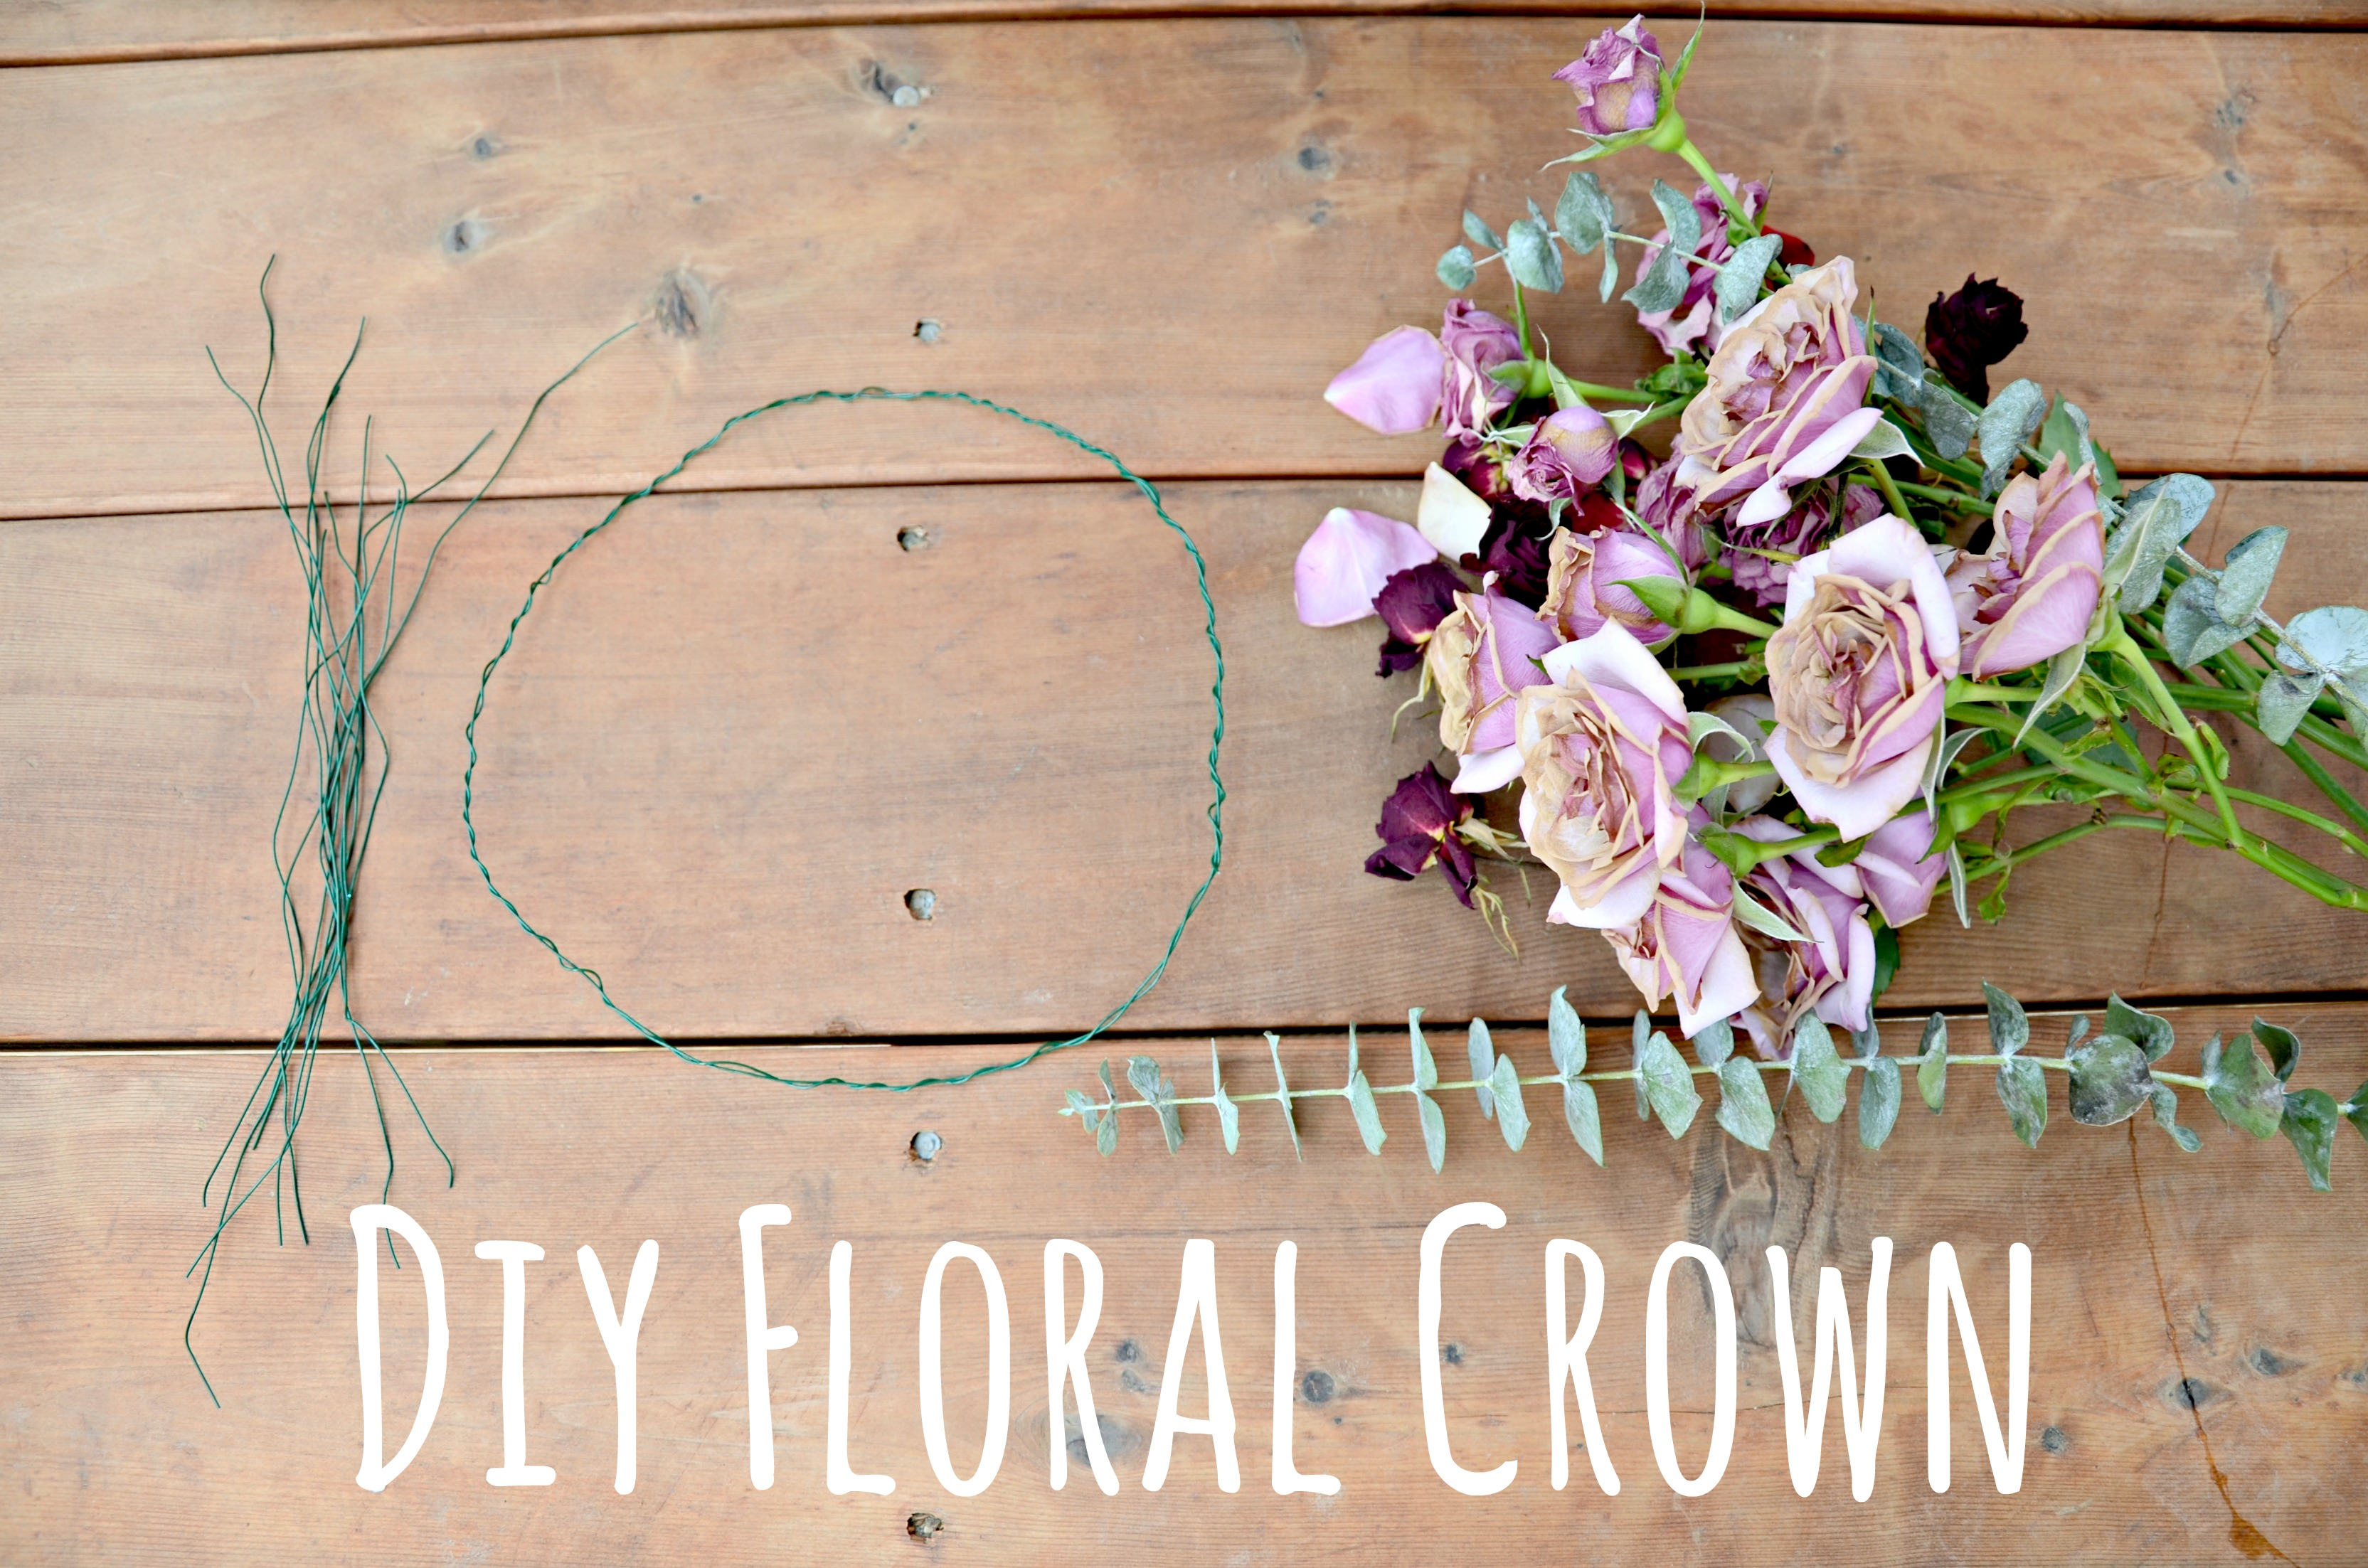 Diy floral crown hi lovely diy floral crown flower headpiece for coachella and festivals by hi lovely izmirmasajfo Choice Image